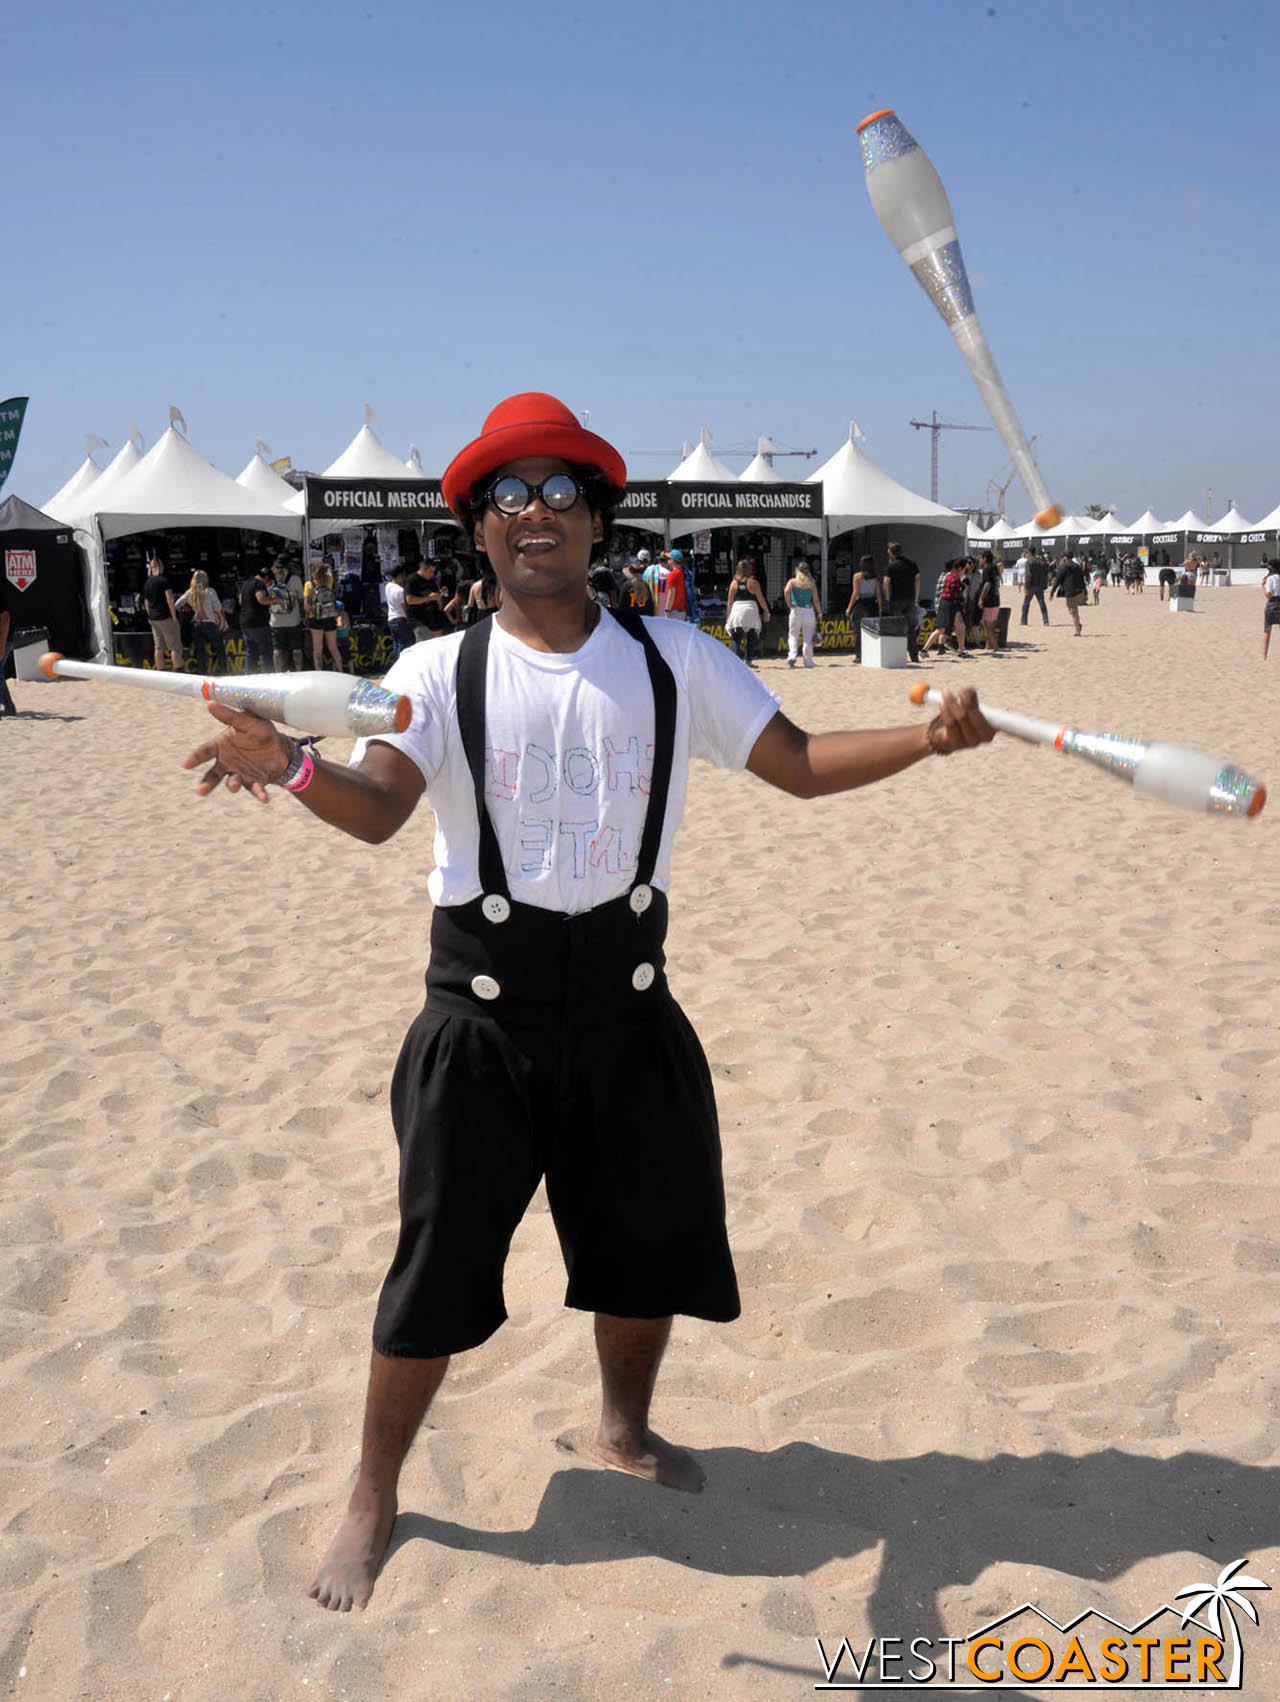 A juggler on hand on the sand.